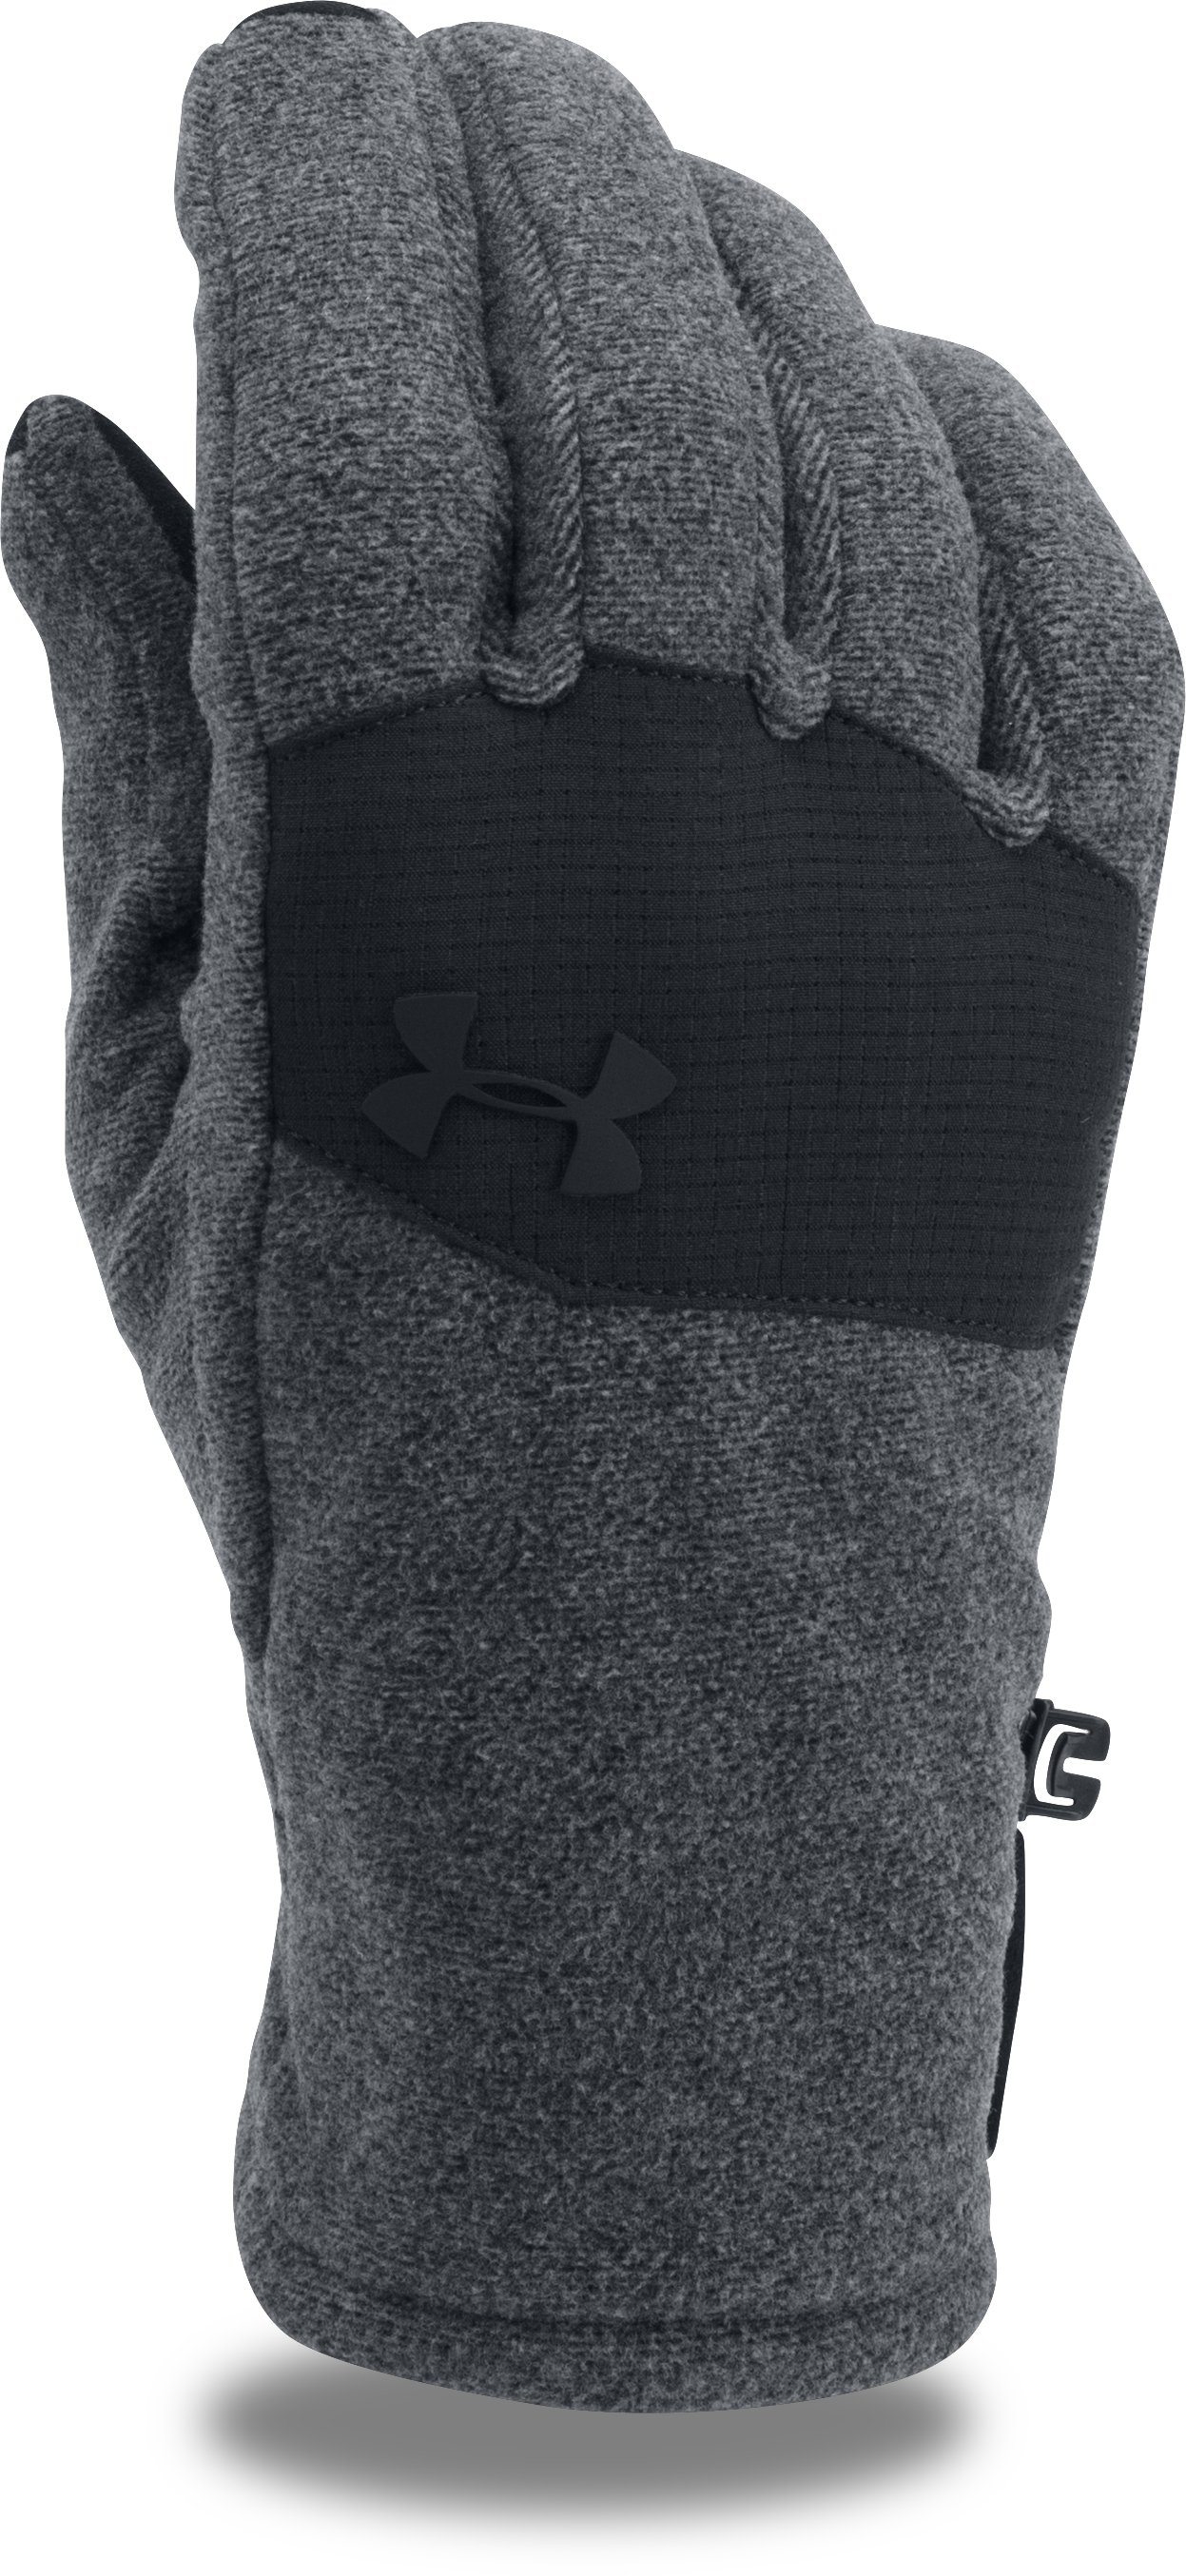 Men's ColdGear® Infrared Fleece 2.0 Gloves 3 Colors $15.00